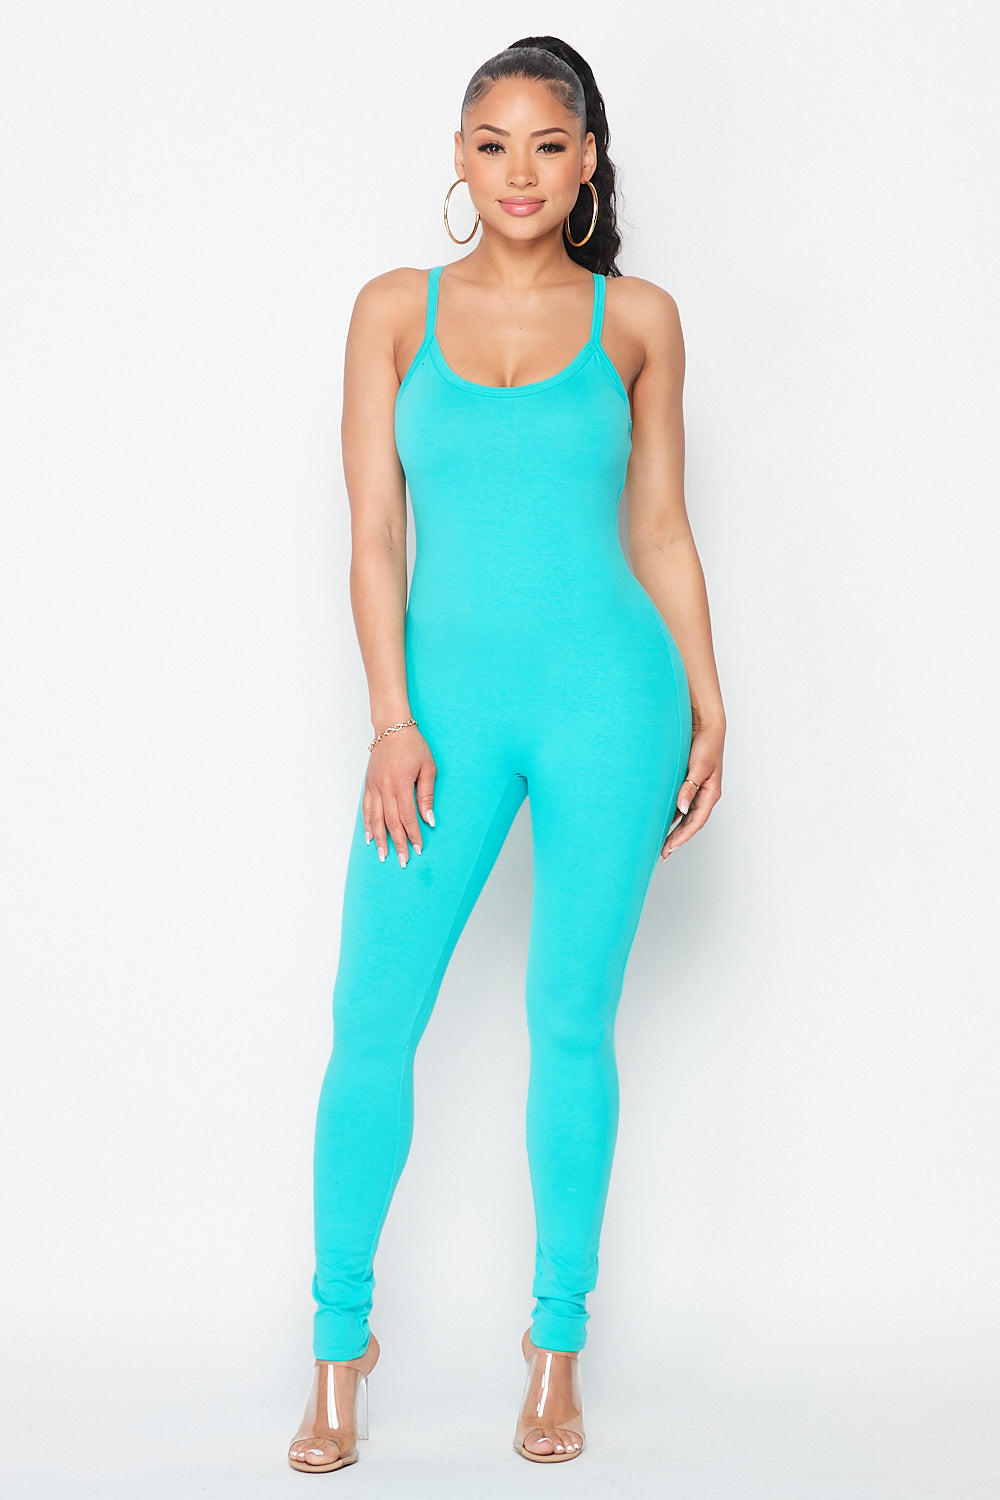 Essentials Spaghetti Strap Jumpsuit in Mint - Fashion House USA